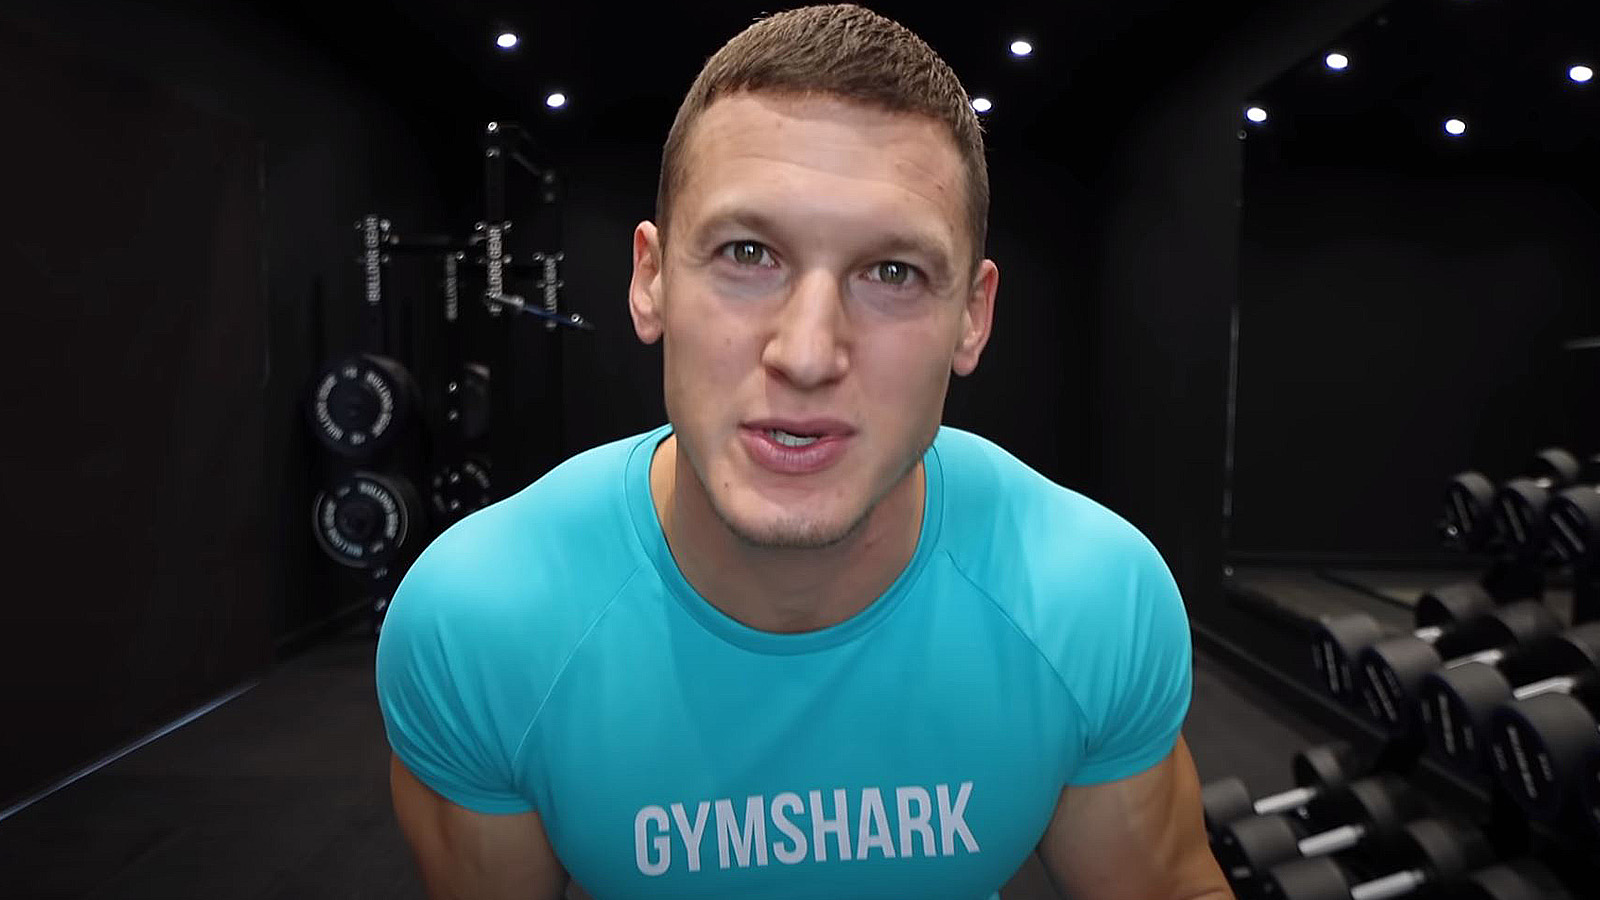 MattDoesFitness talks to his audience while sitting in his home gym.